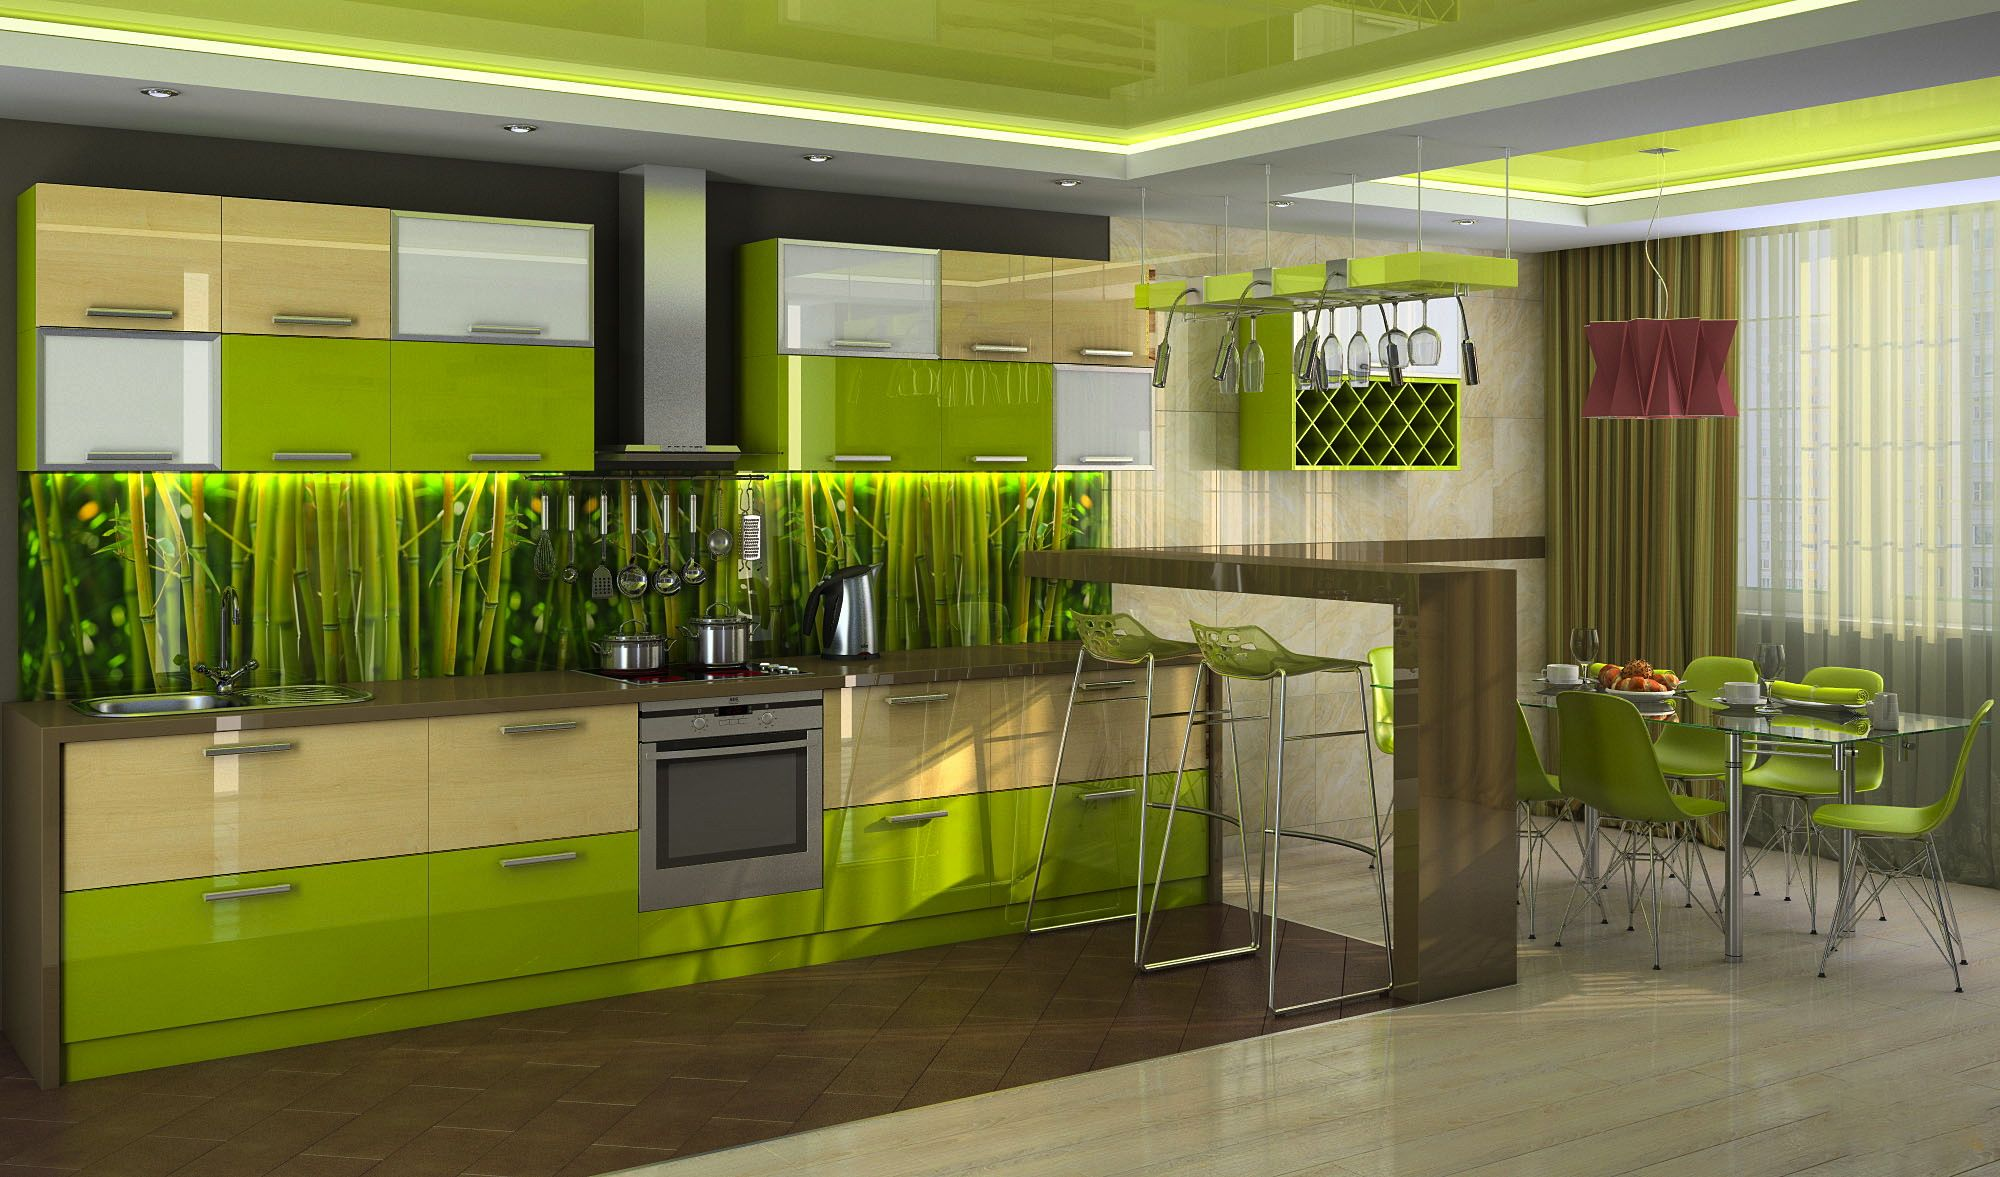 Find This Pin And More On Ideas For The House. Beautiful Lime Green Kitchen  Design ... Part 96